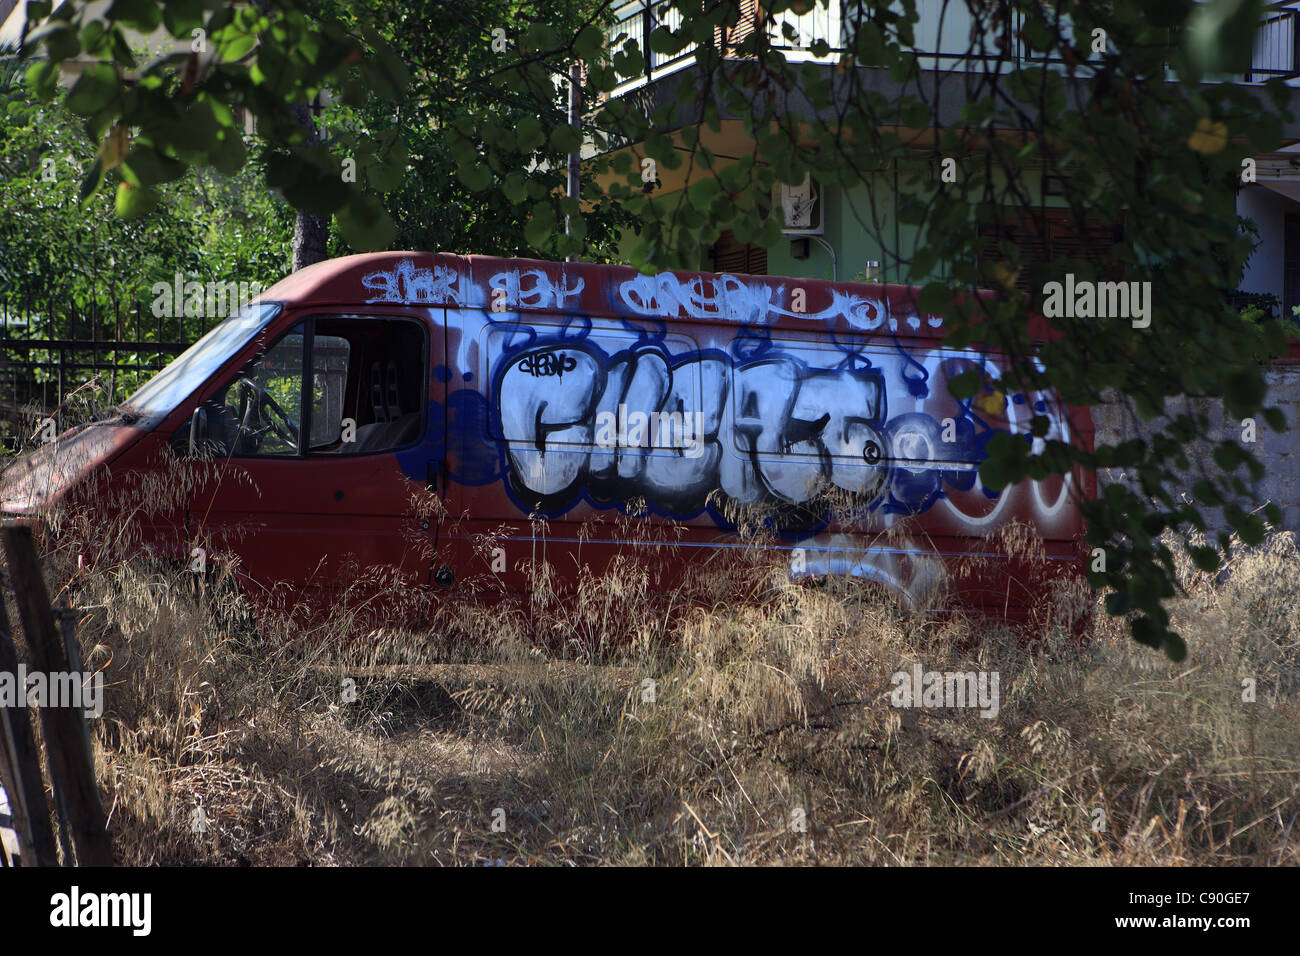 Van covered in Graffiti in Athens Greece - Stock Image